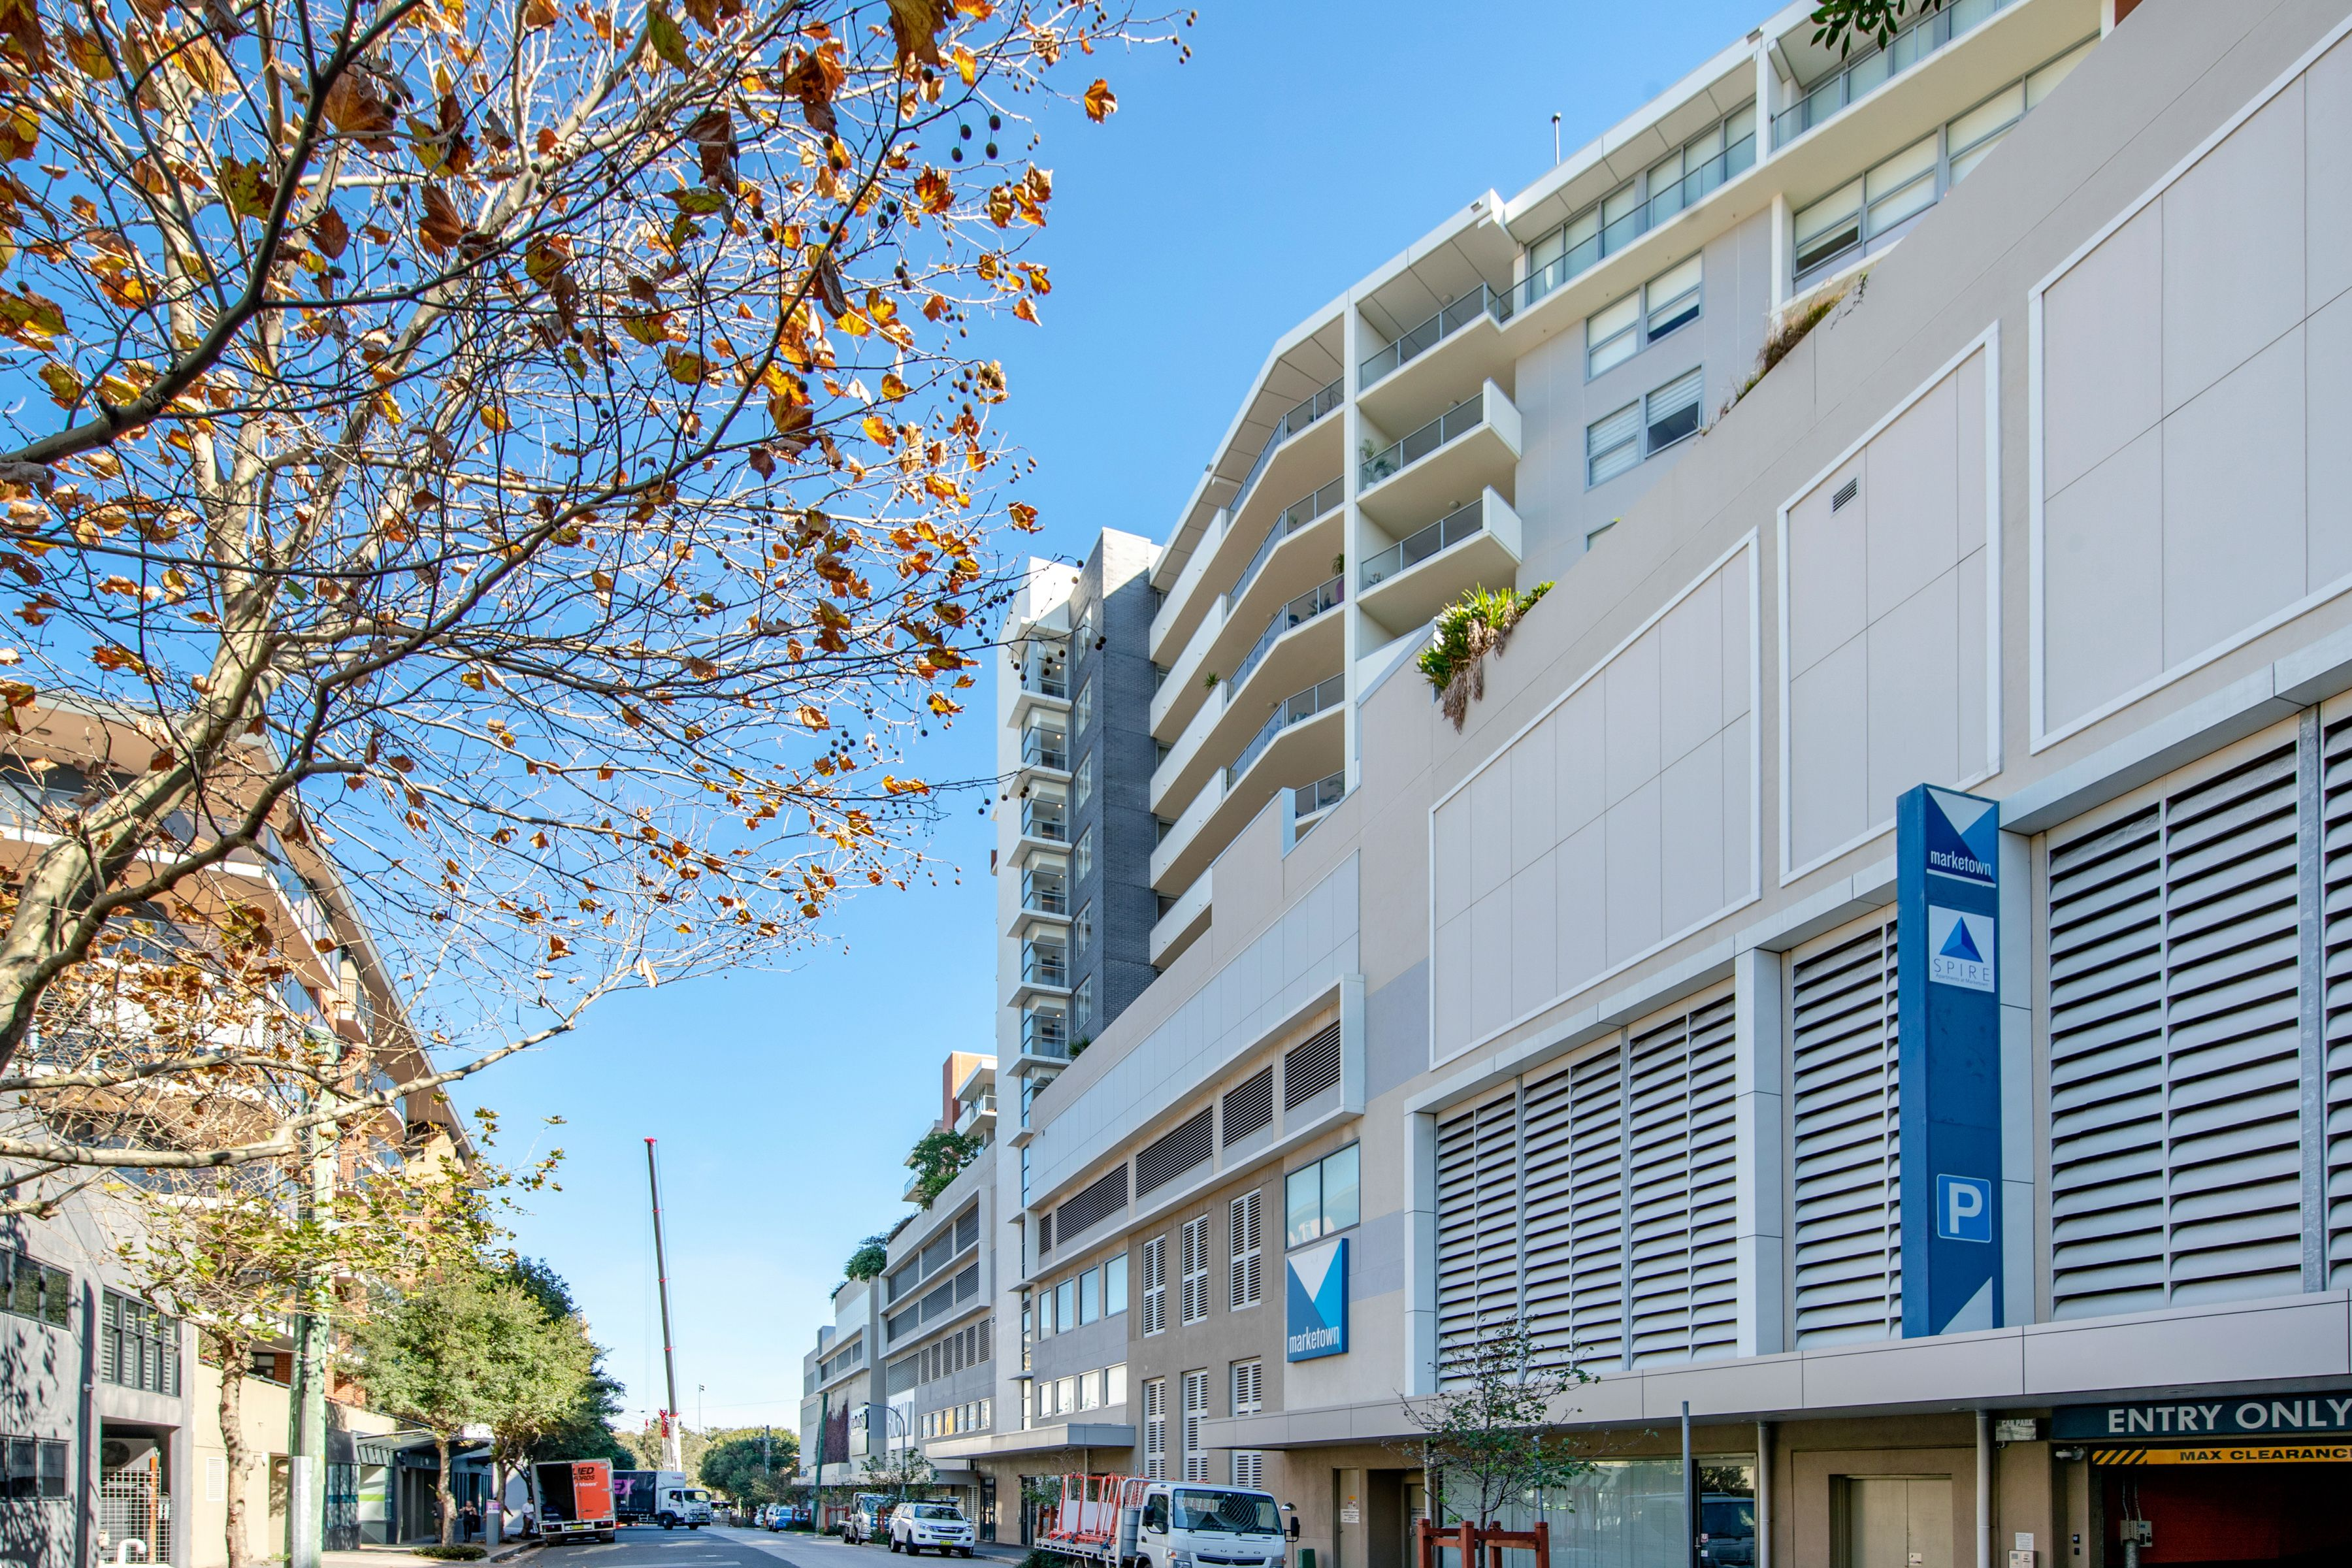 Level 6/604/19 Ravenshaw Street, Newcastle West